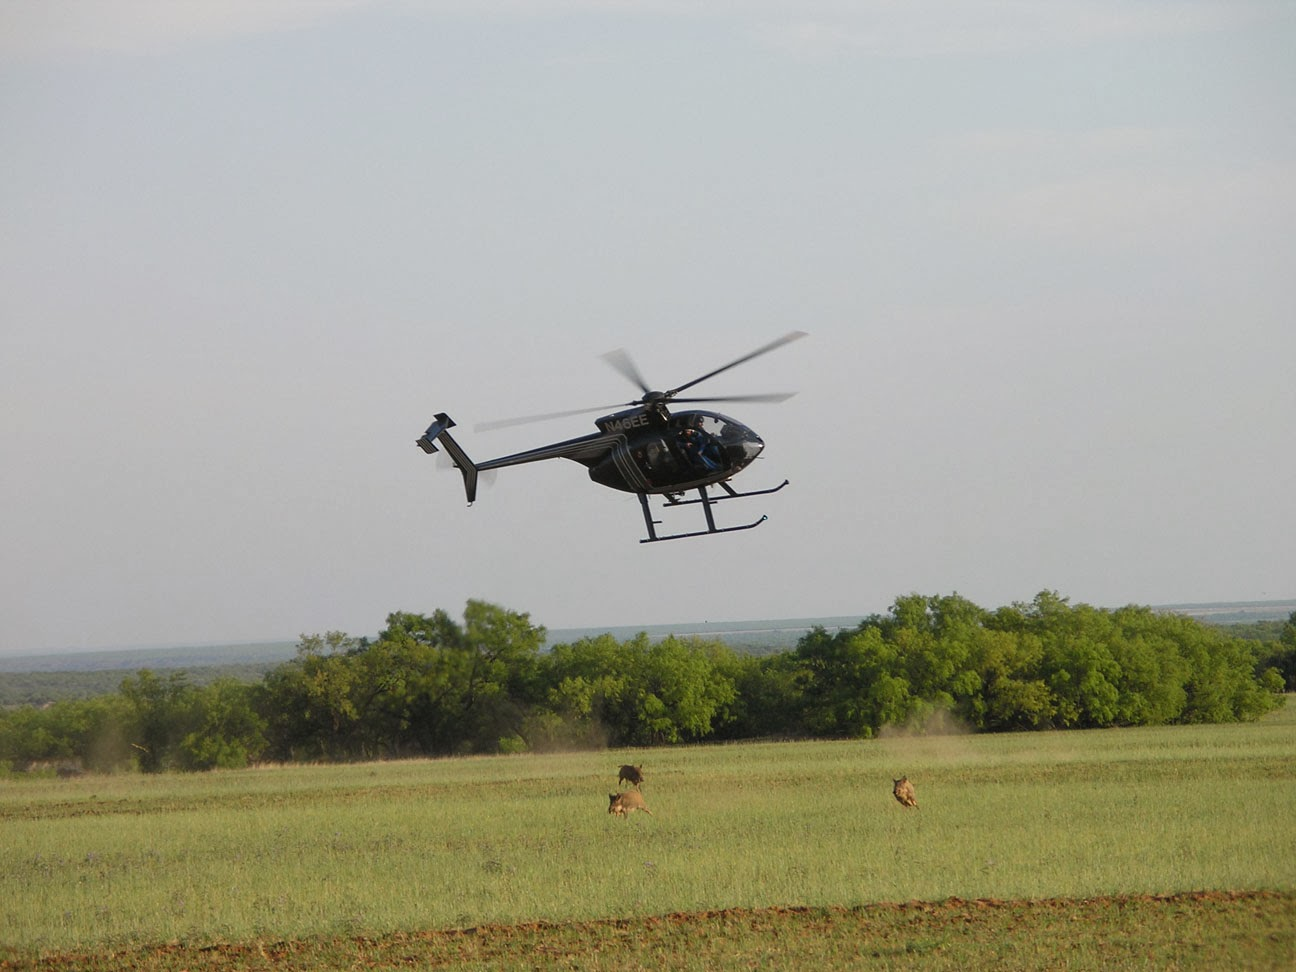 heli hog hunt with The Porkchopper Aerial Hunting Of Feral on helibacon together with Our Helicopter additionally Helicopter Hog Hunt Slow Mo Kill Shots Video together with Bar t Crossbow Team Flying High After Epic Helicopter Feral Hog Hunt further Wild Boar.